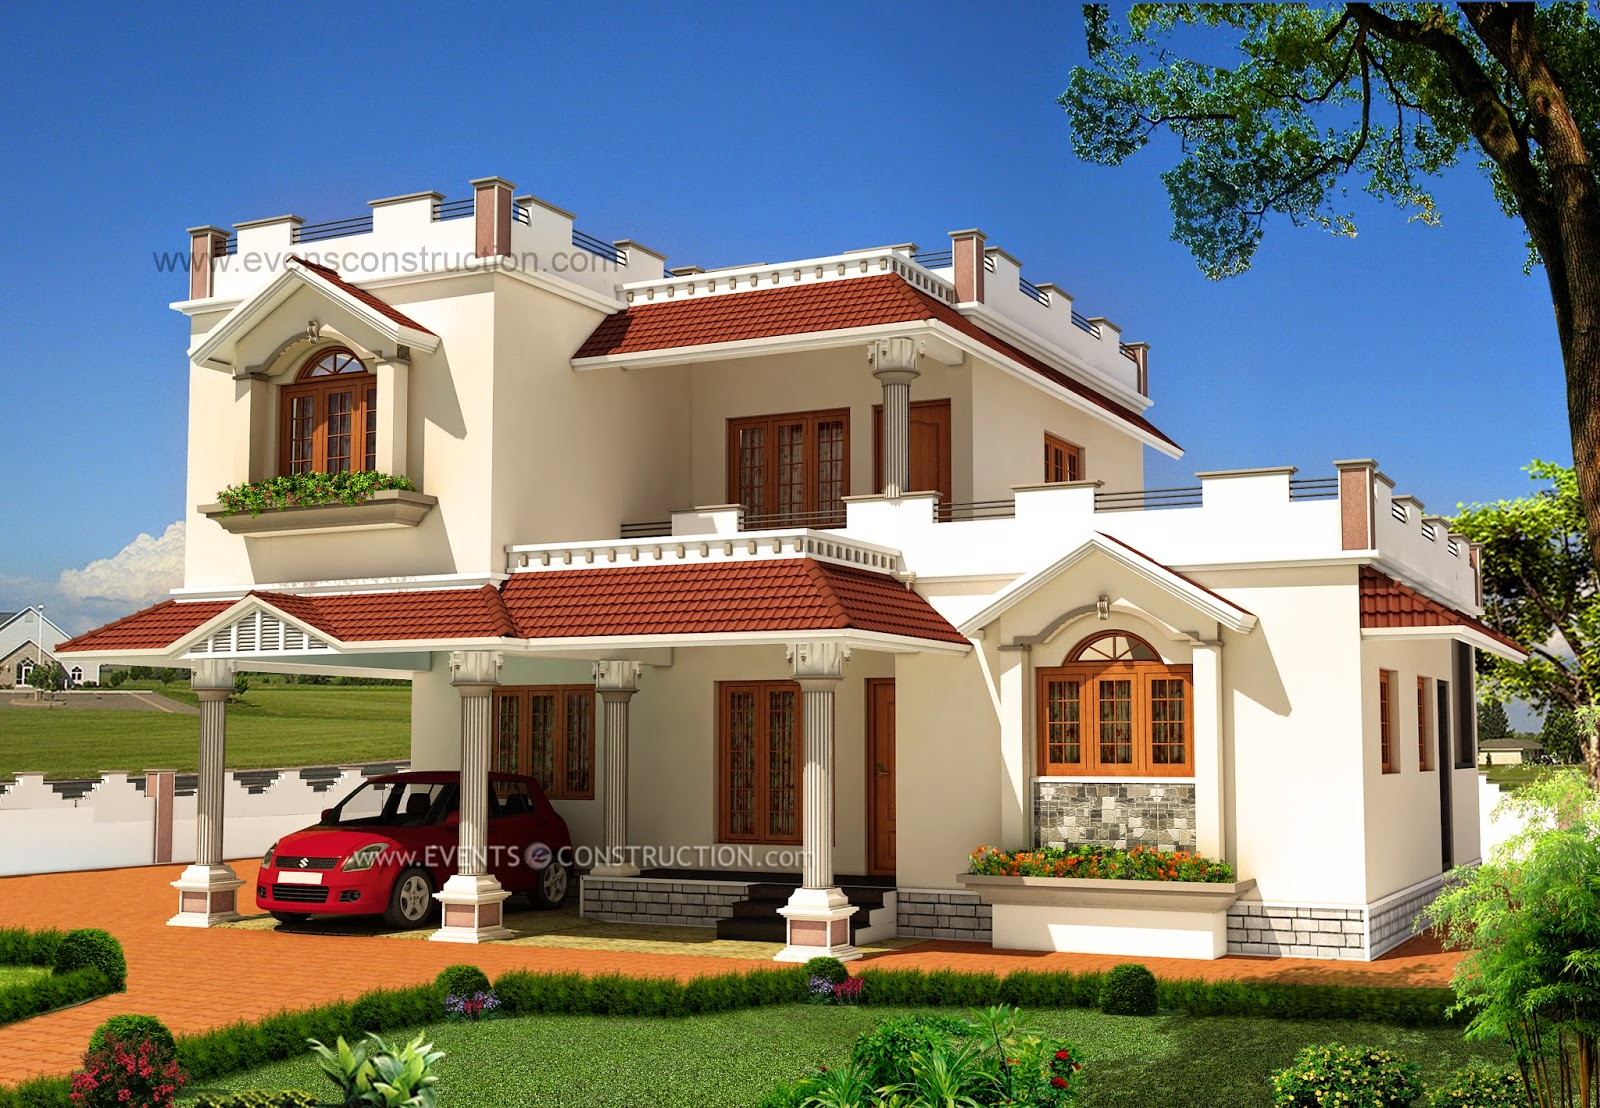 Evens construction pvt ltd september 2014 for Home design exterior ideas in india